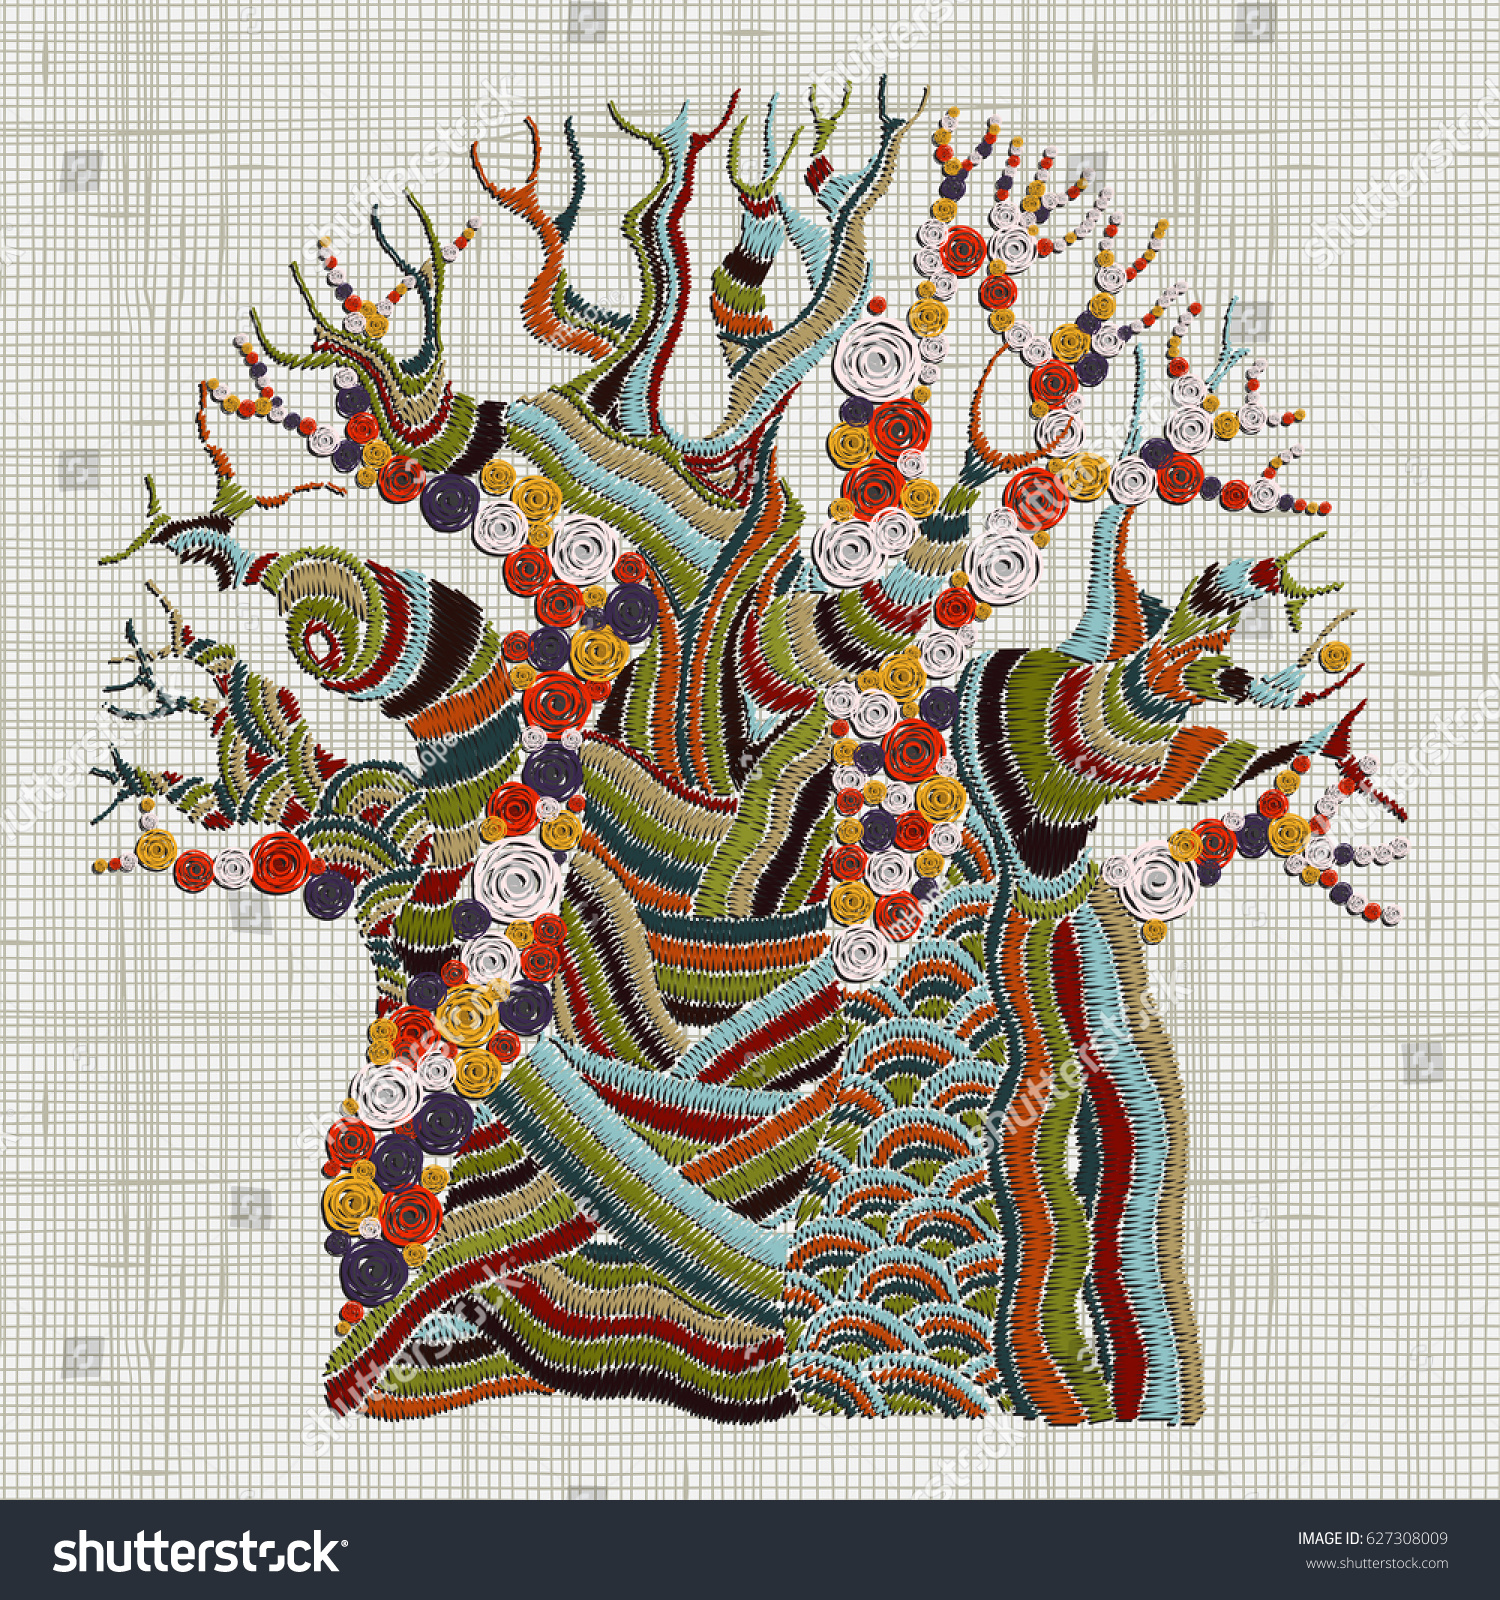 Hand stitched embroidered baobab tree african stock vector hand stitched embroidered baobab tree african tree ethnic wall art embroidery home decor amipublicfo Image collections